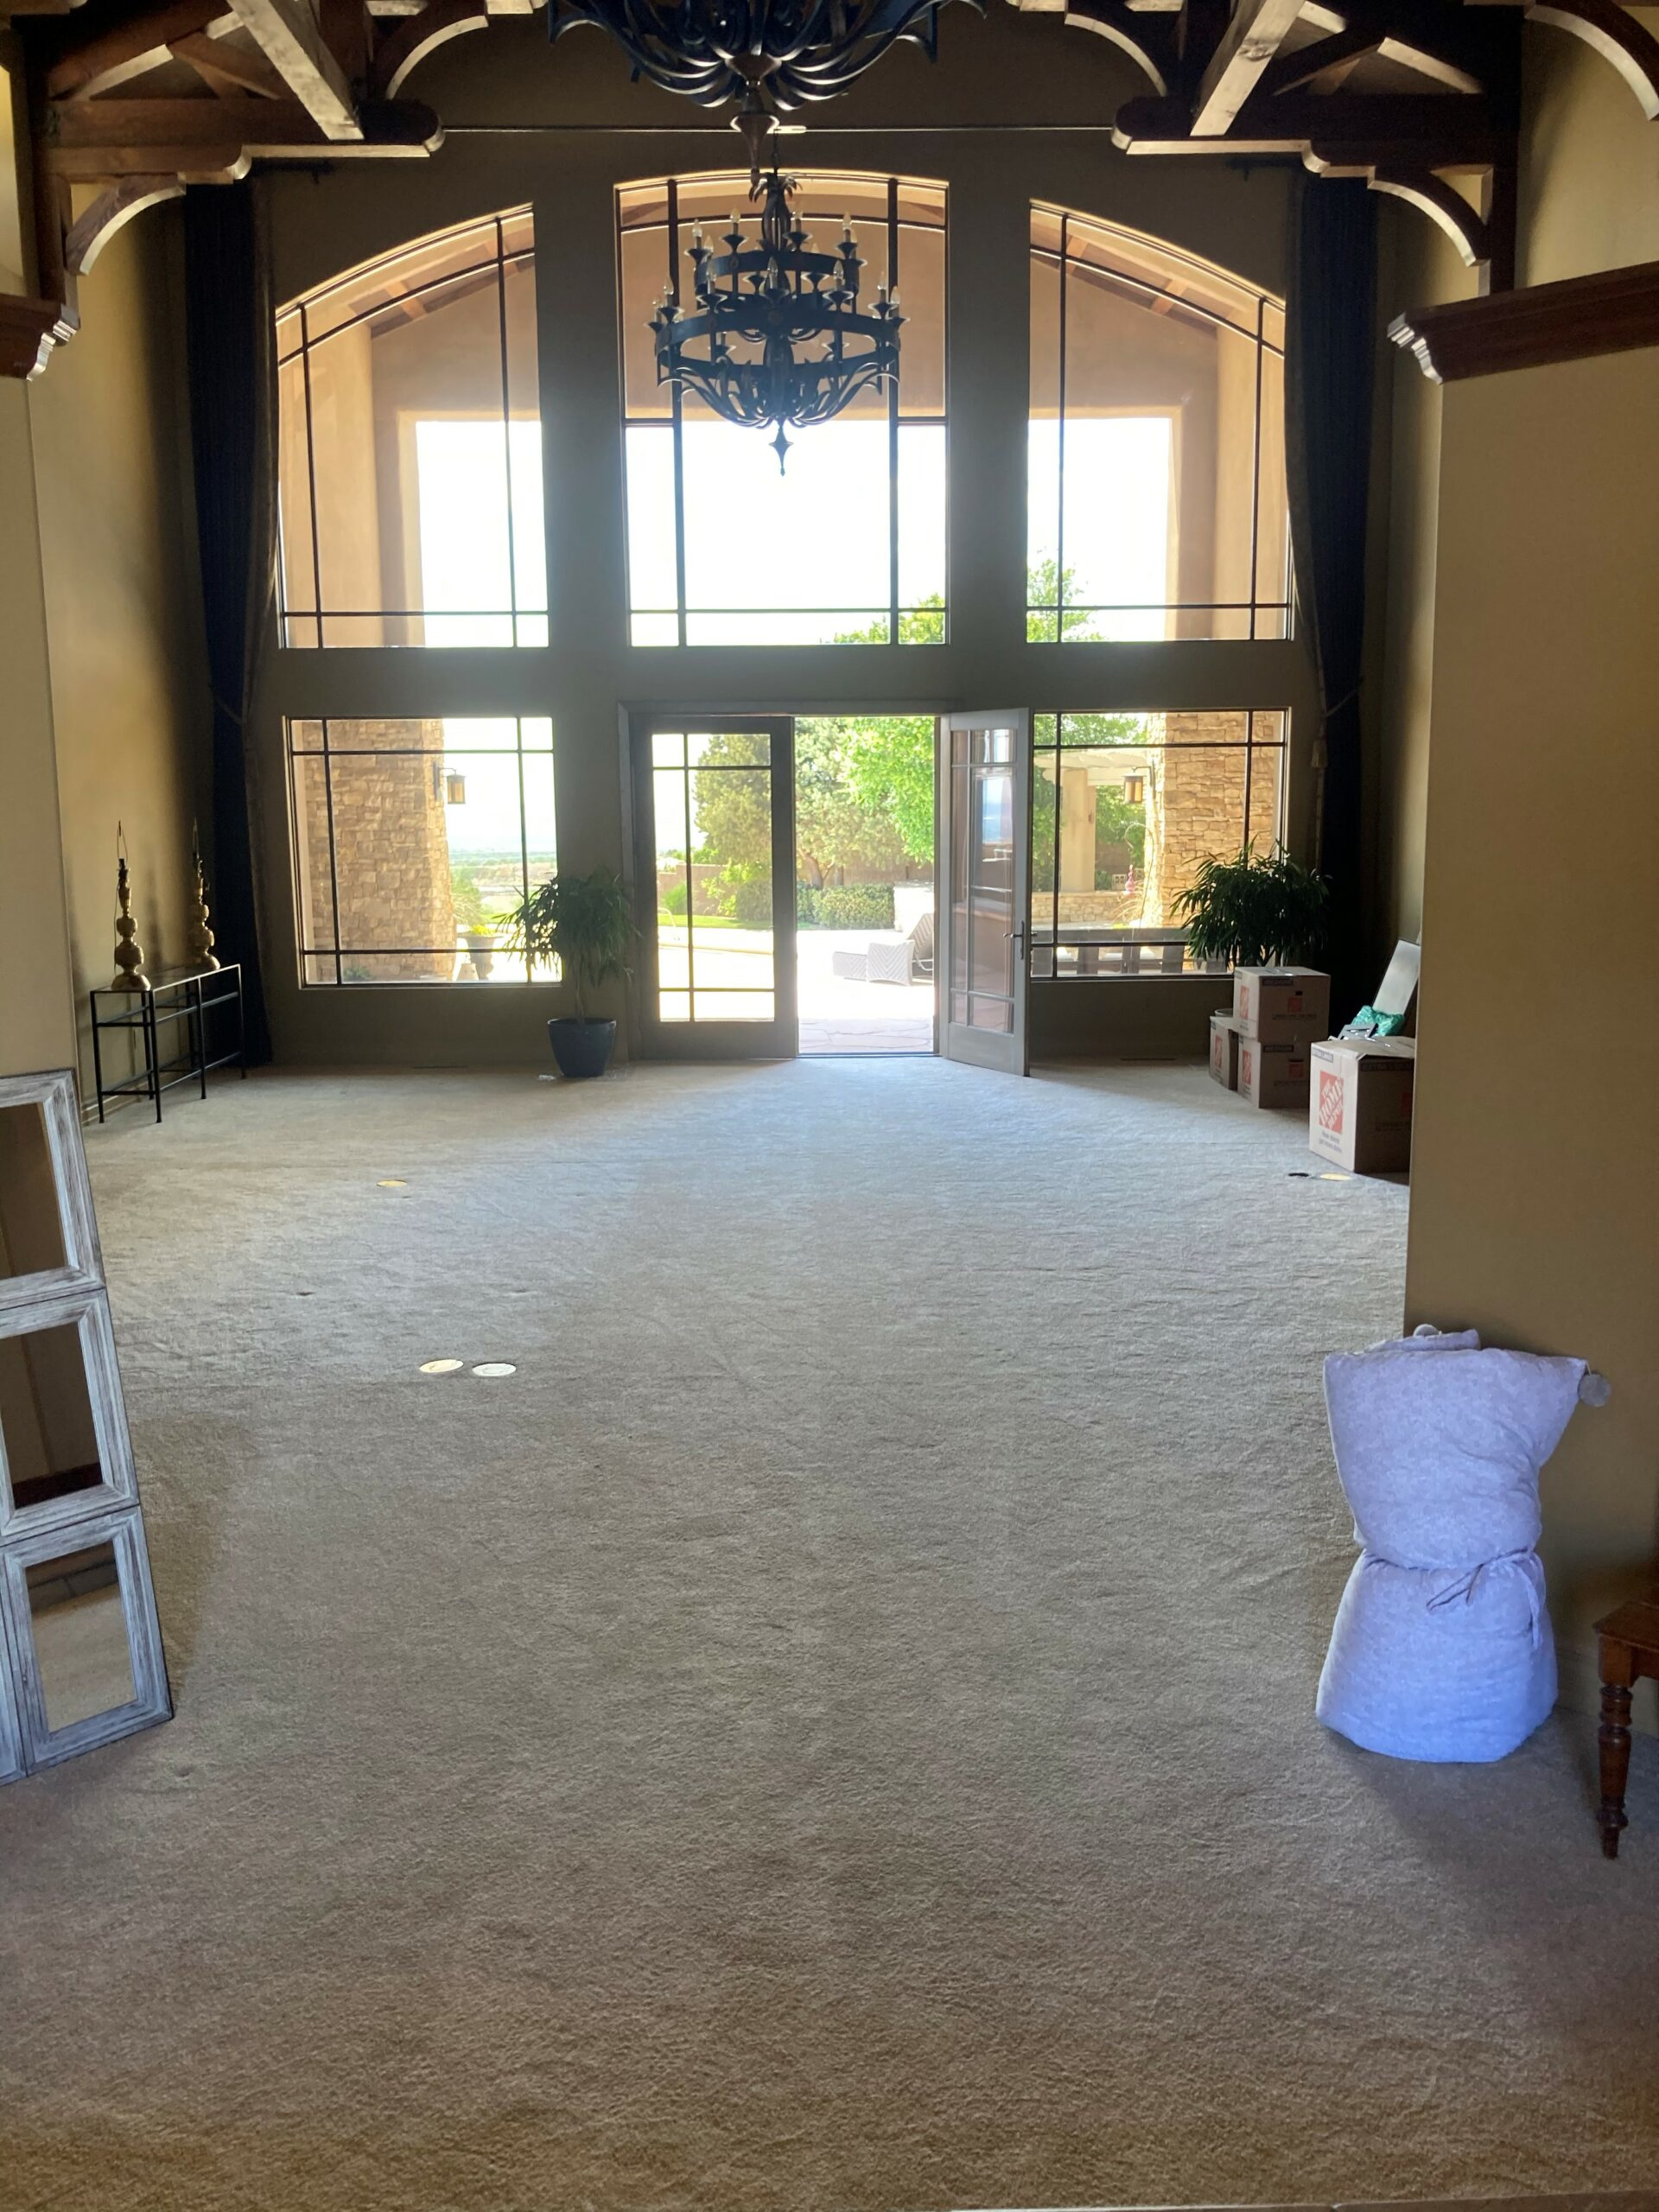 Unloading into New Home Foyer